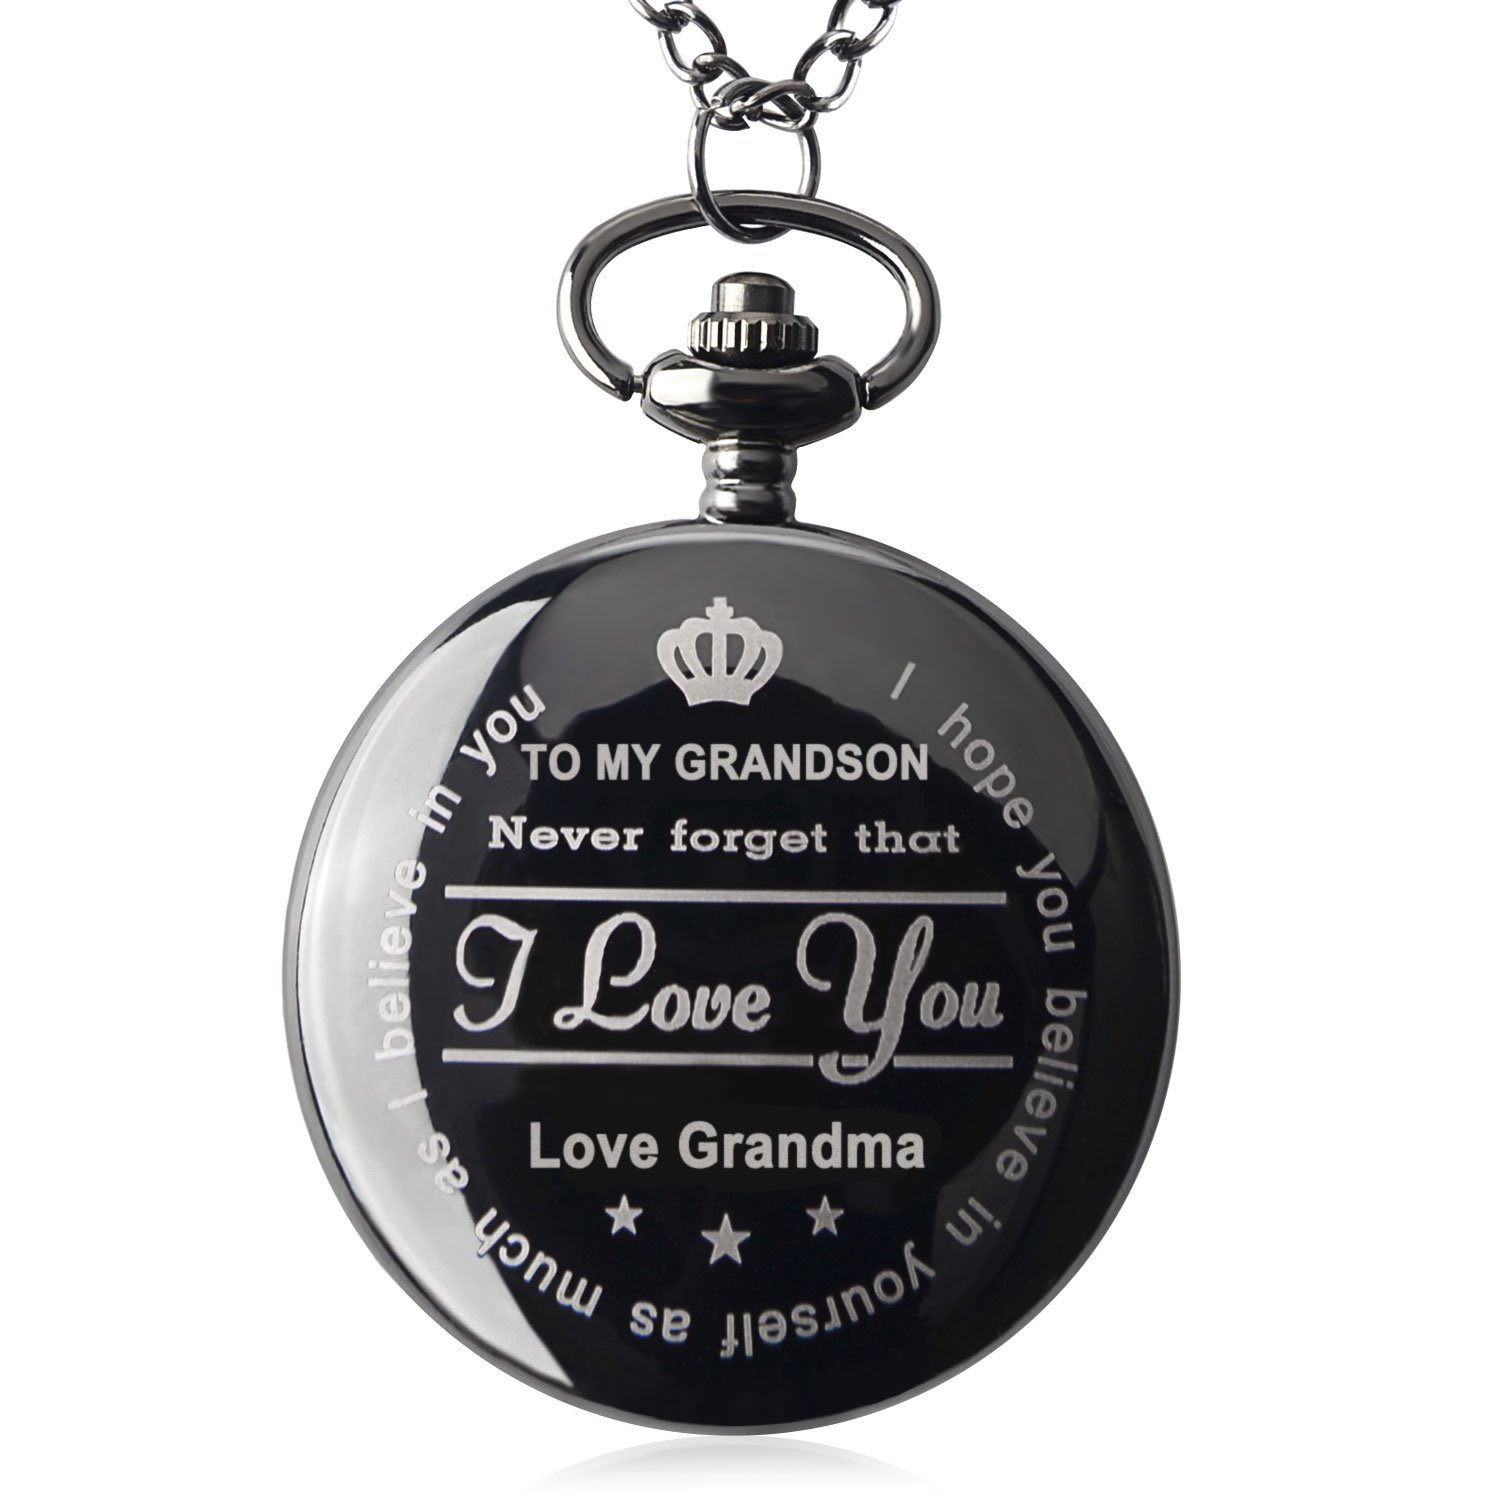 Pocket Watch ''To My GrandSon - Love Grandma(Love Grandpa)''Necklace Chain From Grandparents to Grandson Gifts with Black Gift Box By Qise (Love GrandMa Black)